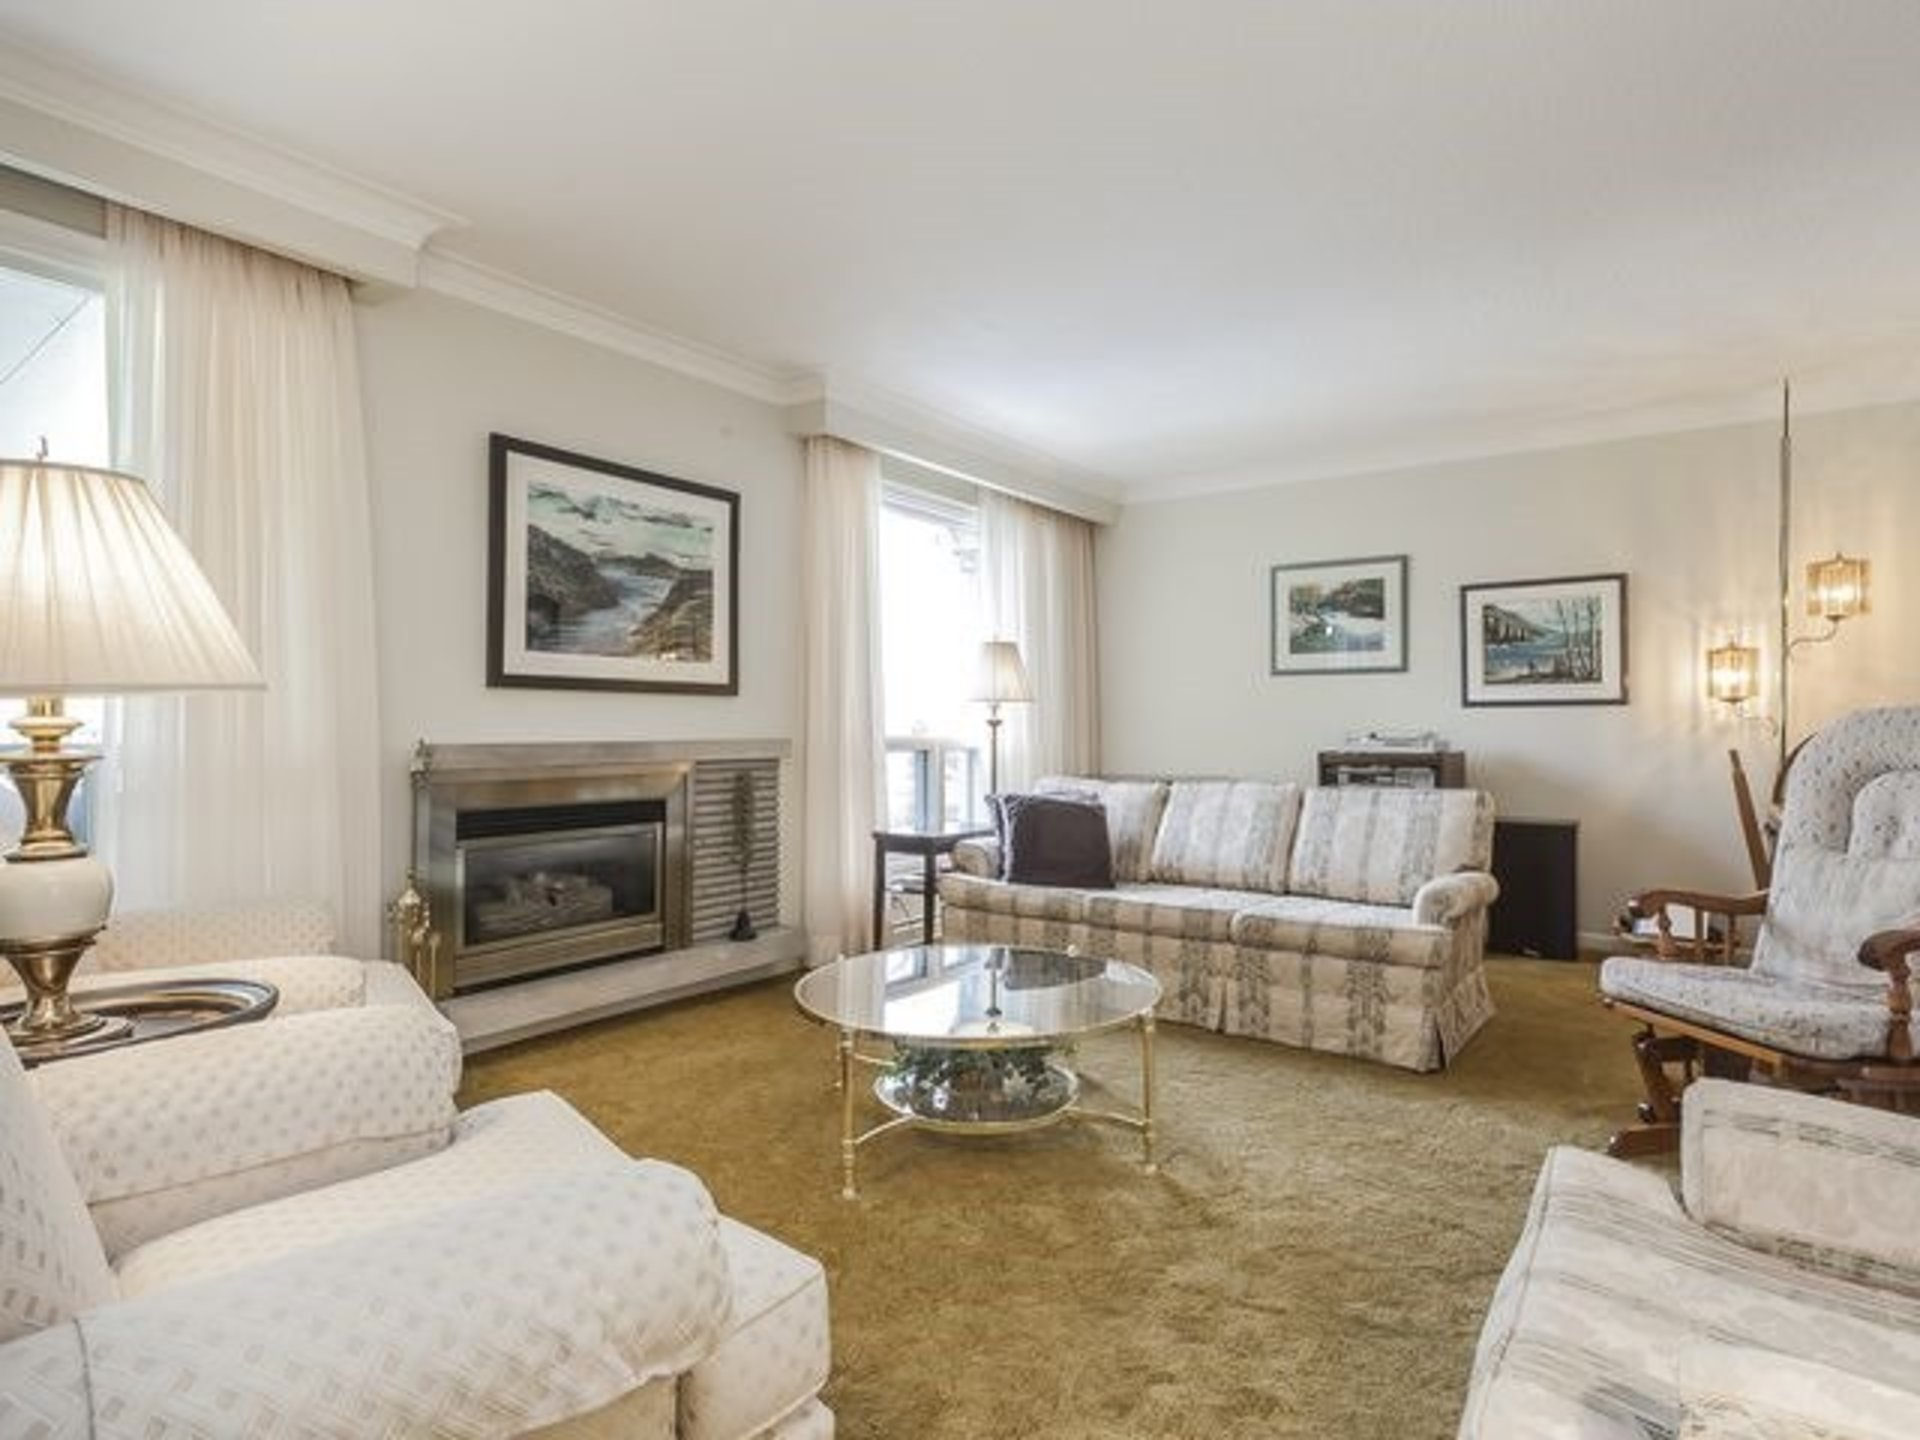 SALE #456 - 46 Palomino Crescent, Bayview Village, Toronto 2